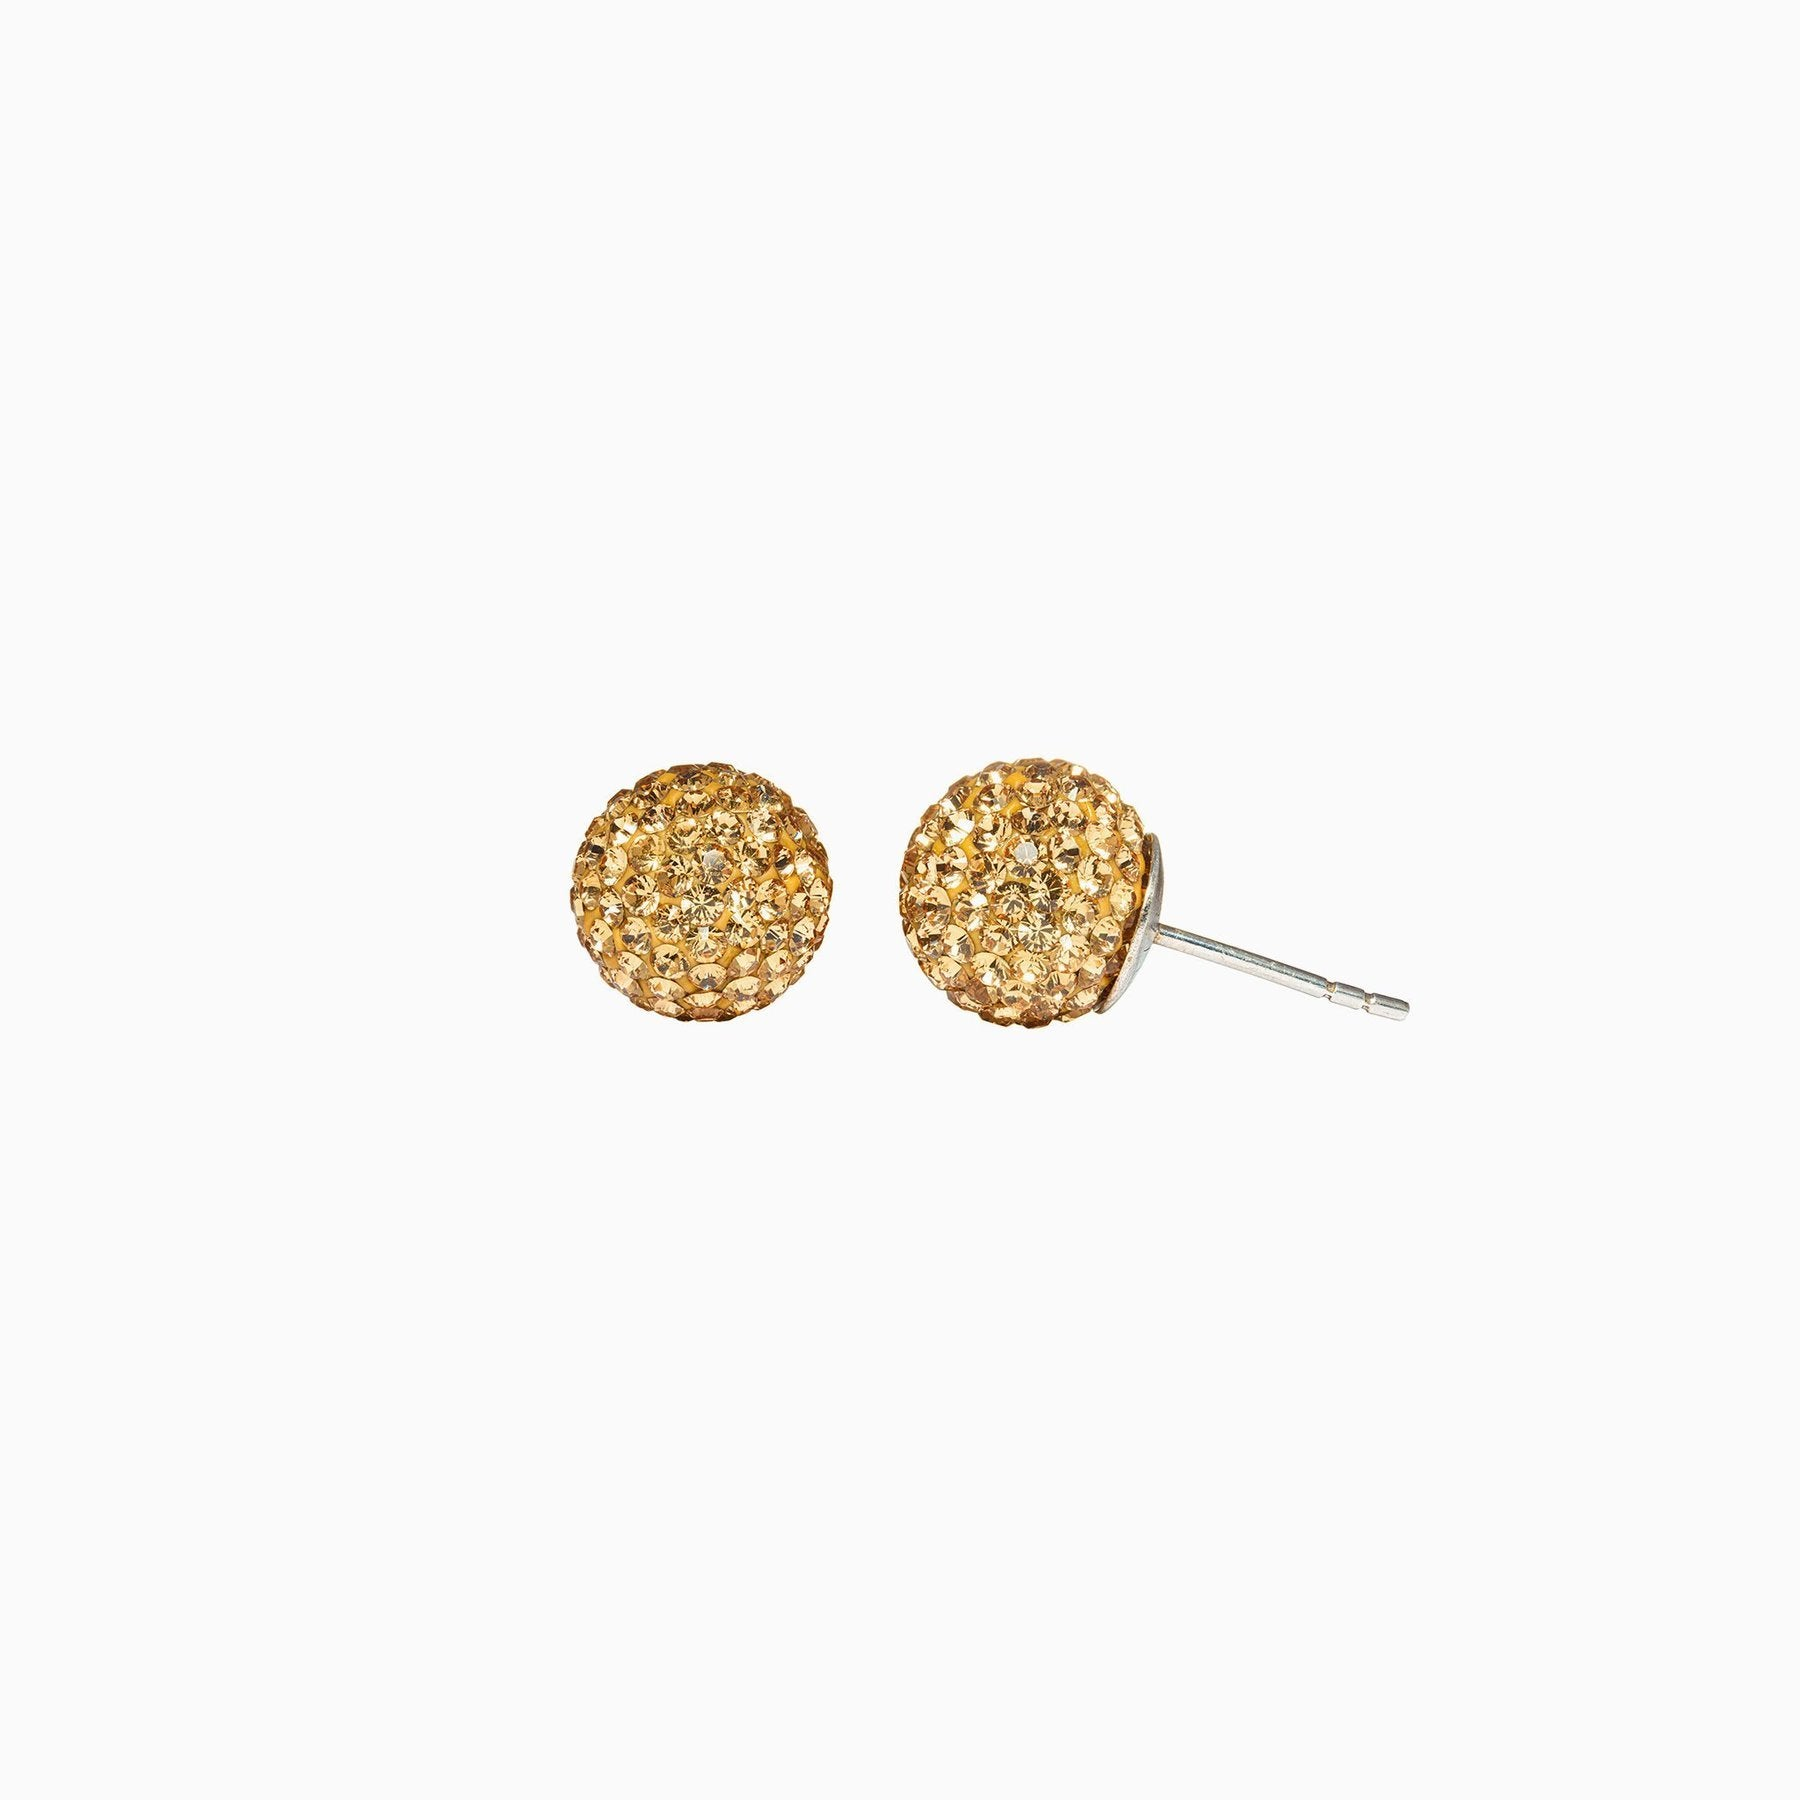 H&B Sparkle Ball™ Stud Earrings - 10mm Gold